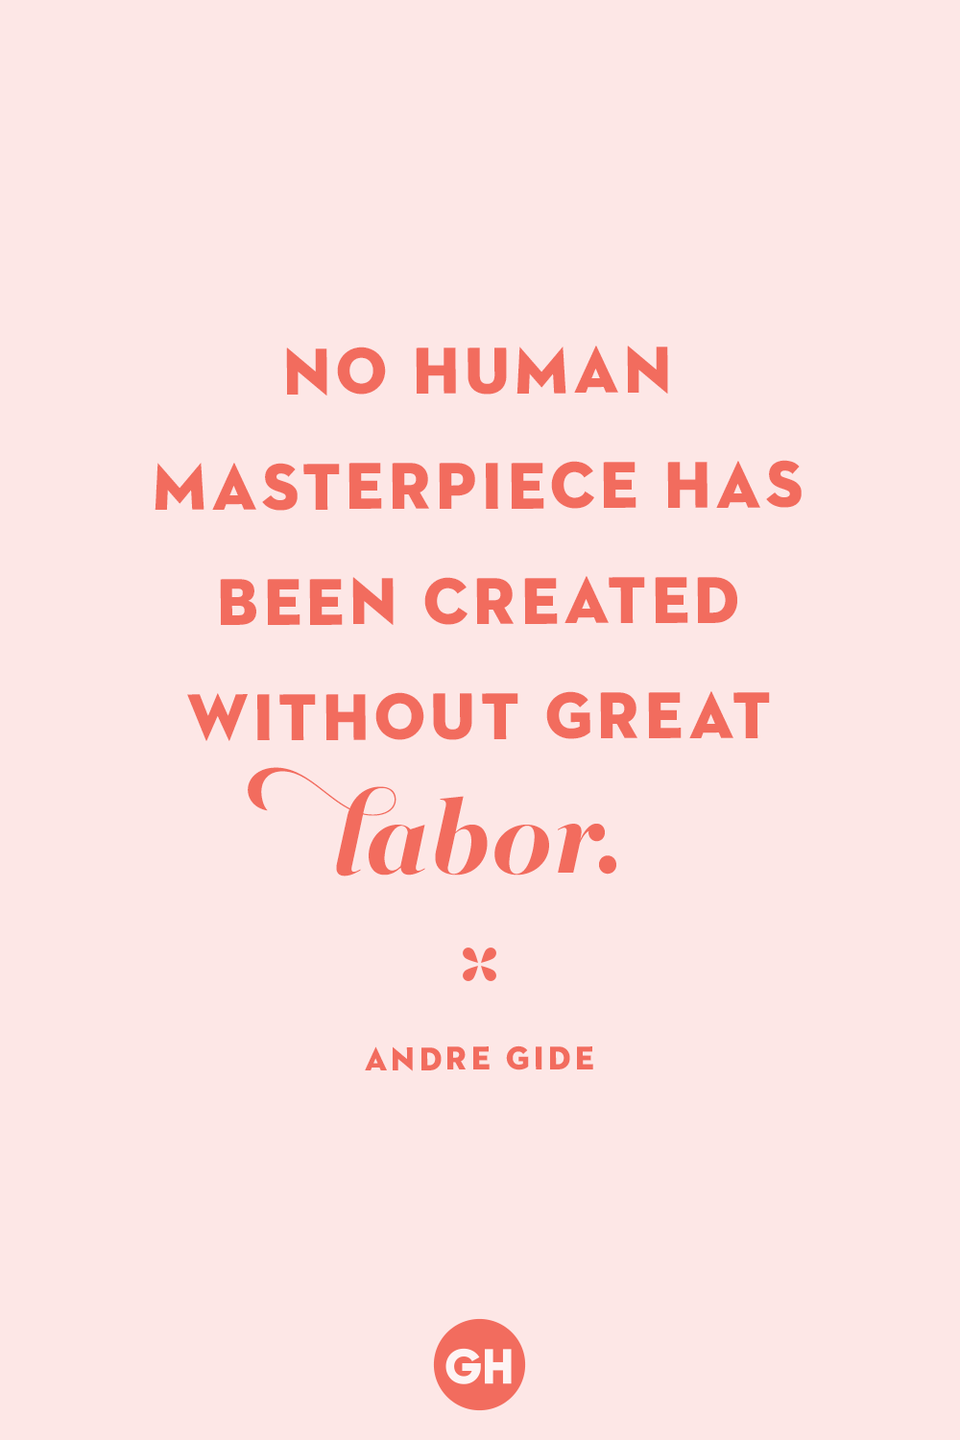 <p>No human masterpiece has been created without great labor.</p>